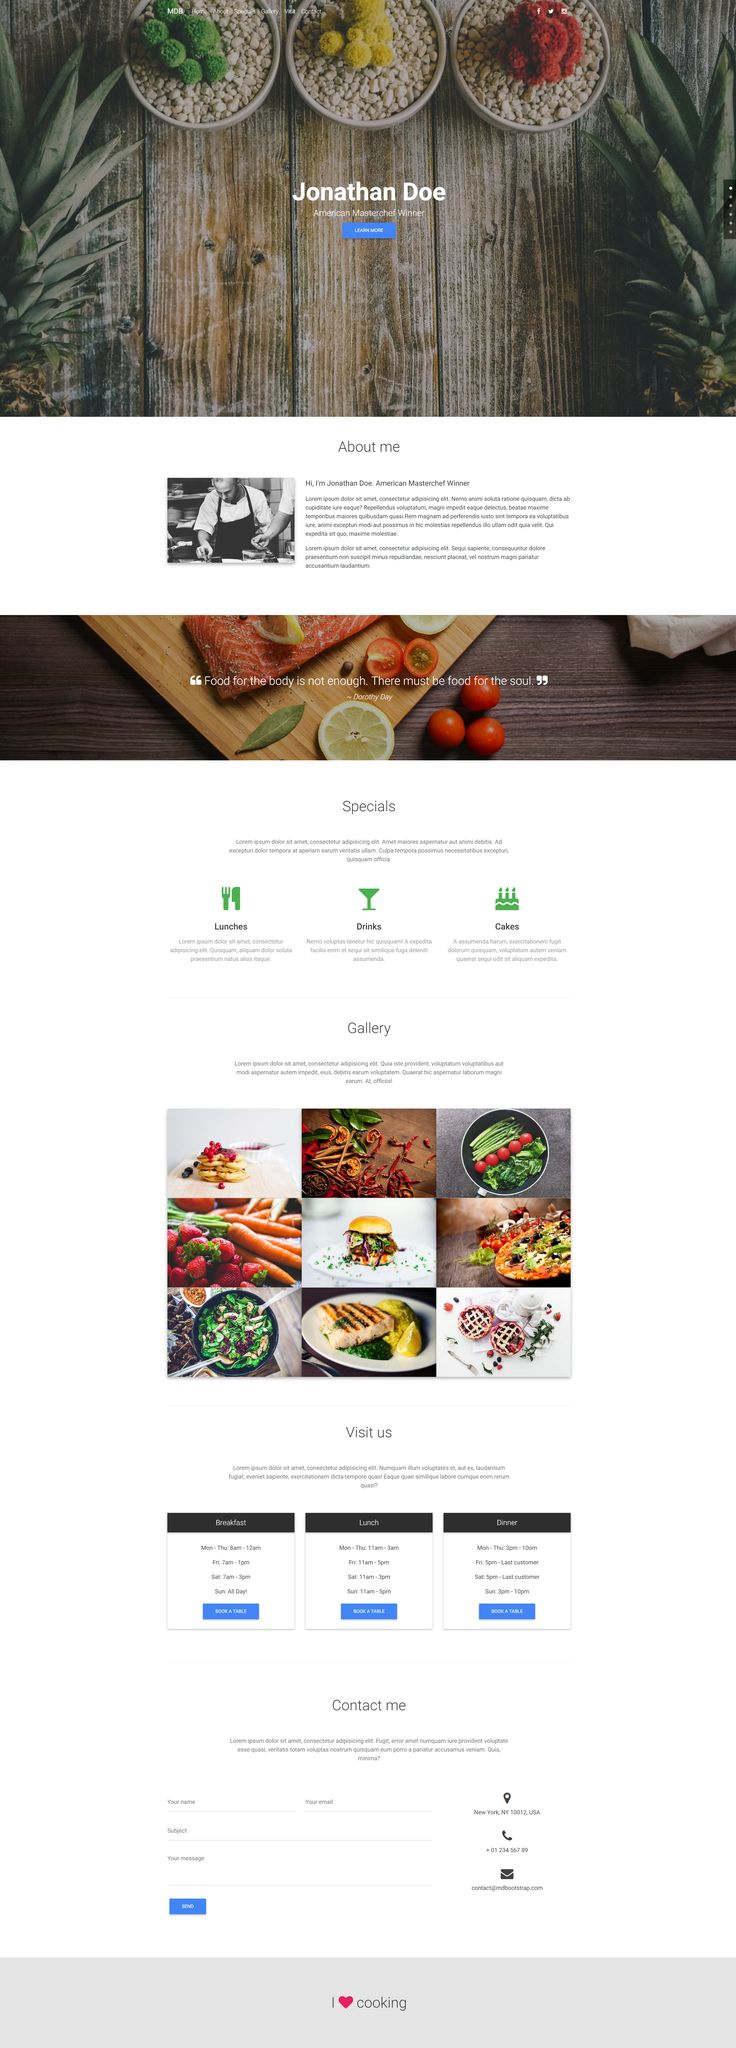 Fully responsive portfolio template, created for coulinary related businesses.